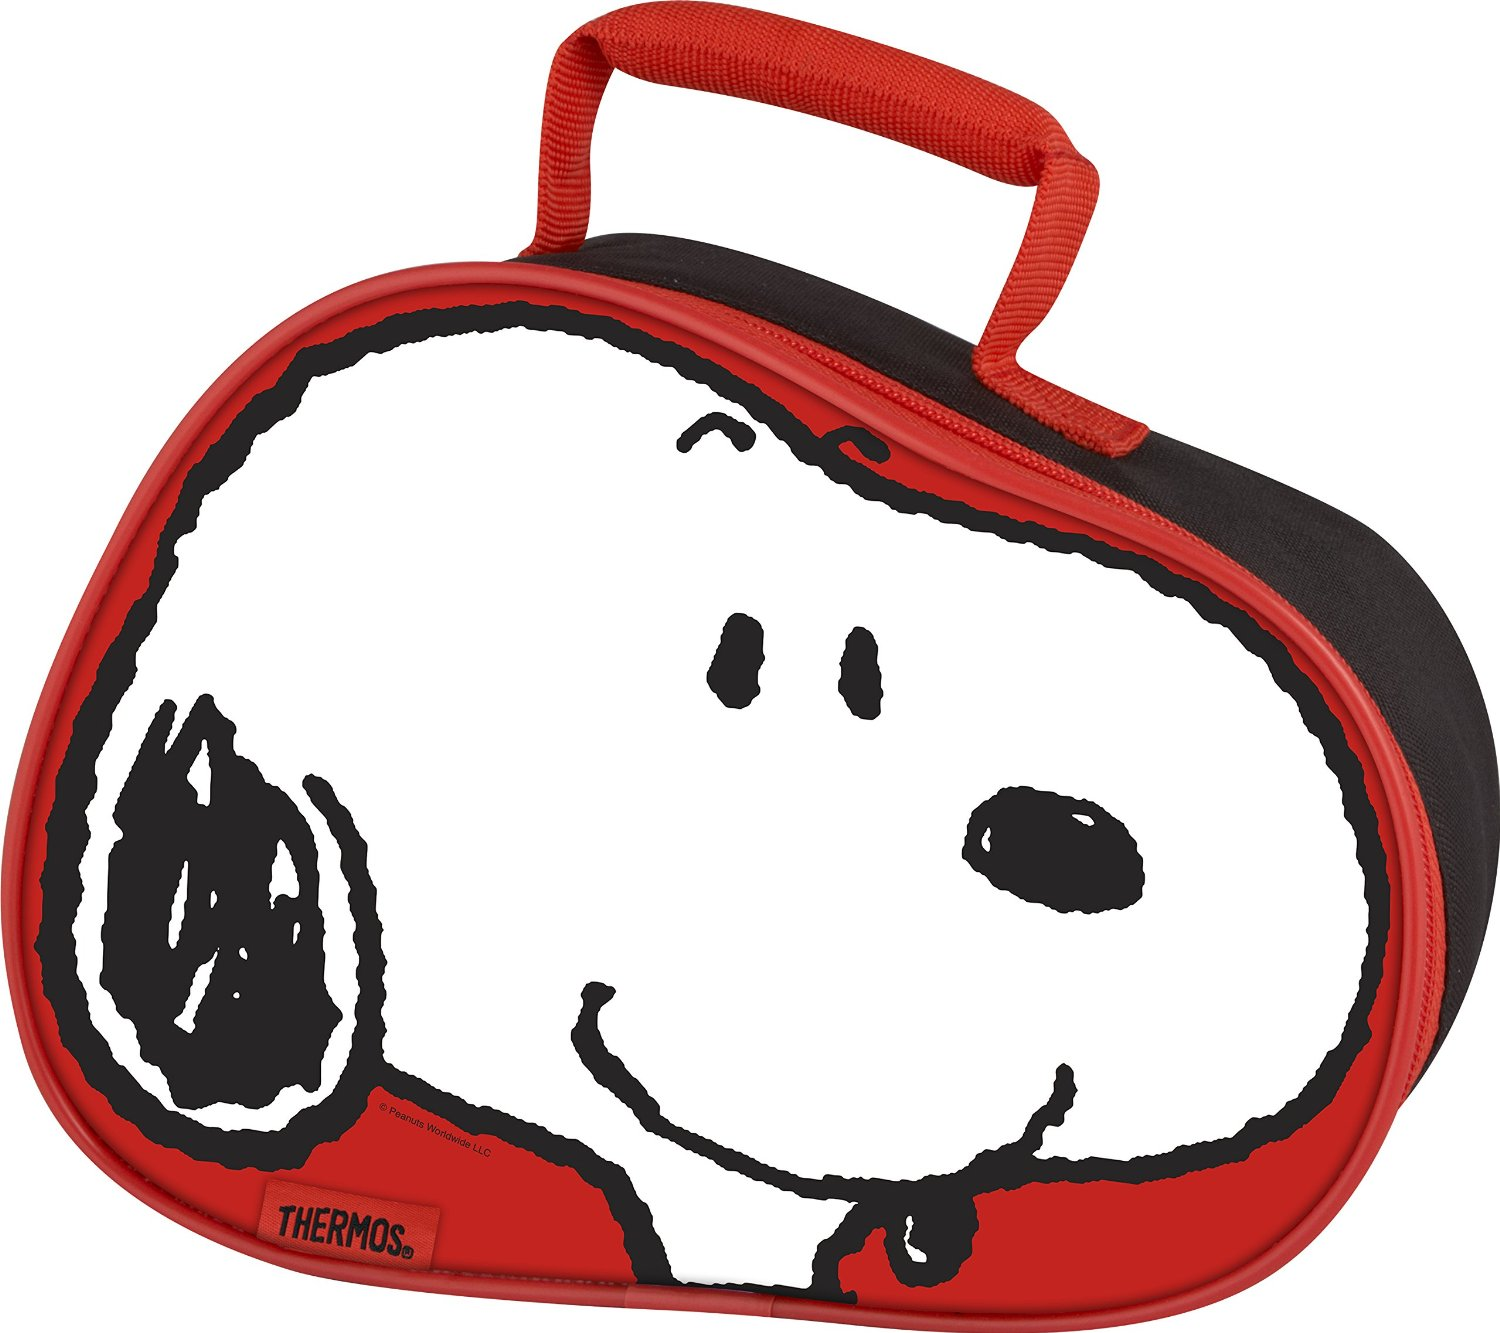 Thermos Novelty Lunch Kit, Snoopy